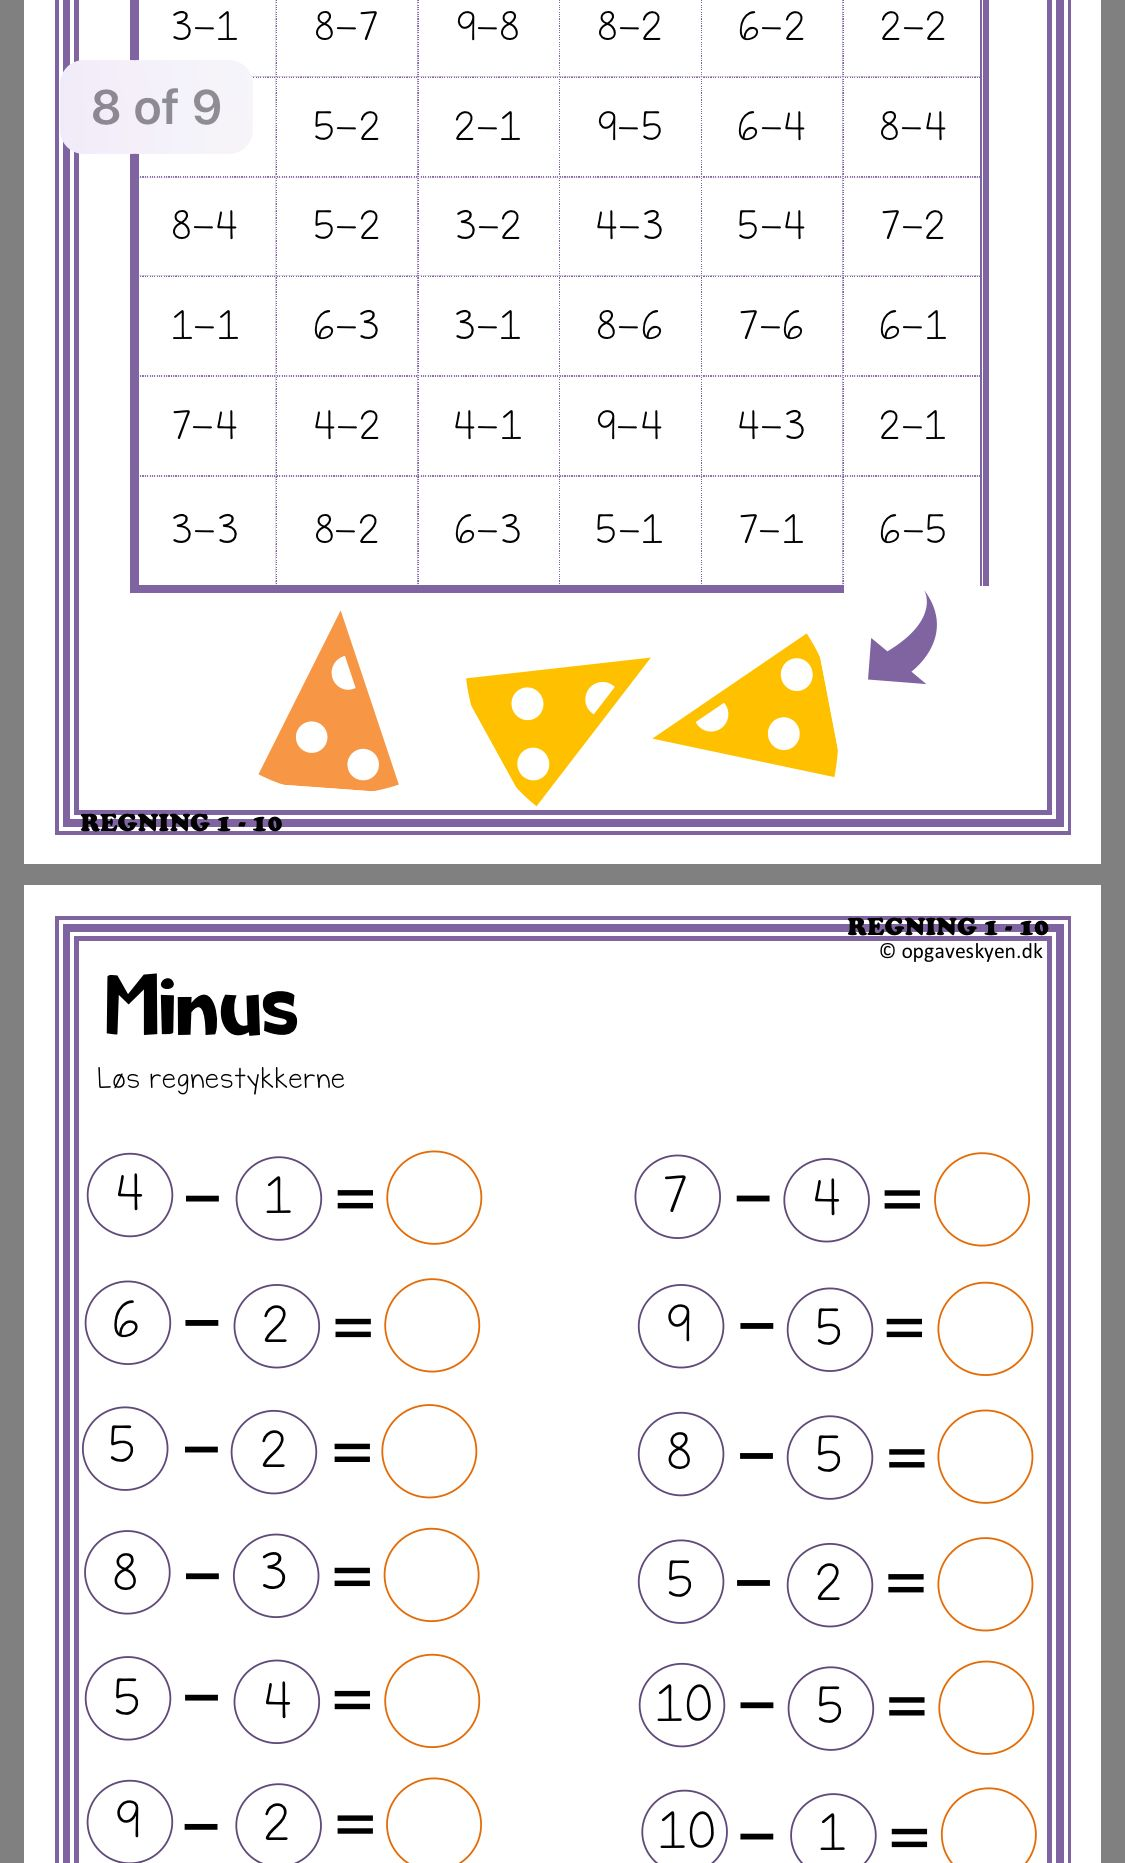 Pin by mohsina on Math idea | Math, Word search puzzle, Words